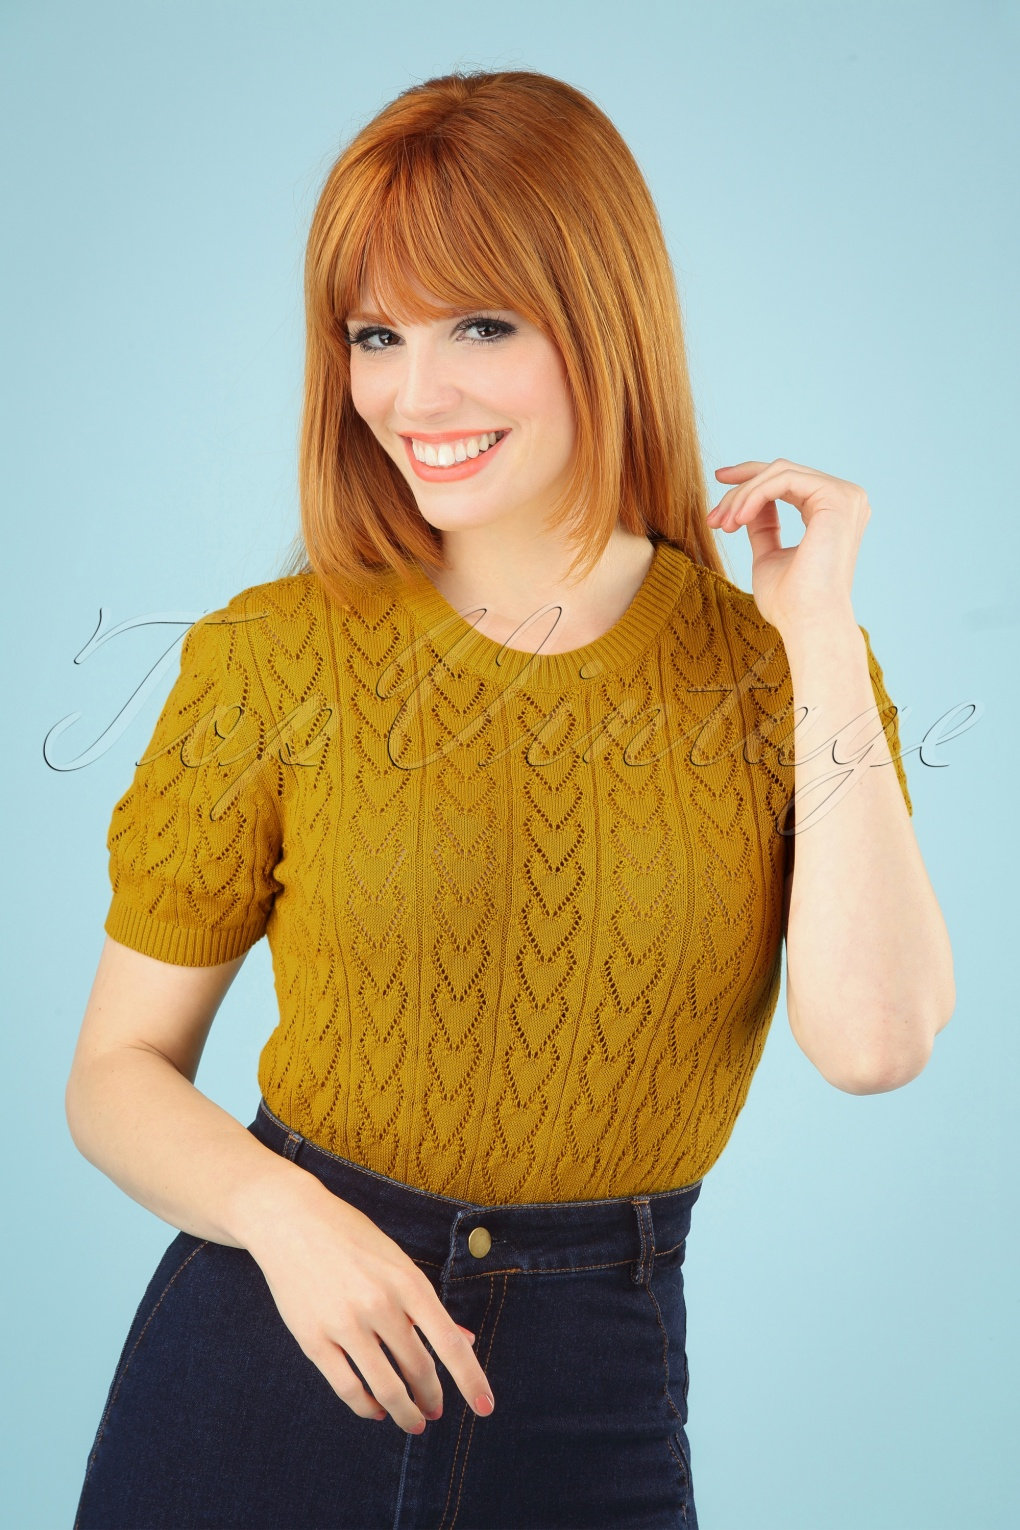 60s Dresses & 60s Style Dresses UK 60s Heart Crew Top in Mustard Yellow �30.68 AT vintagedancer.com